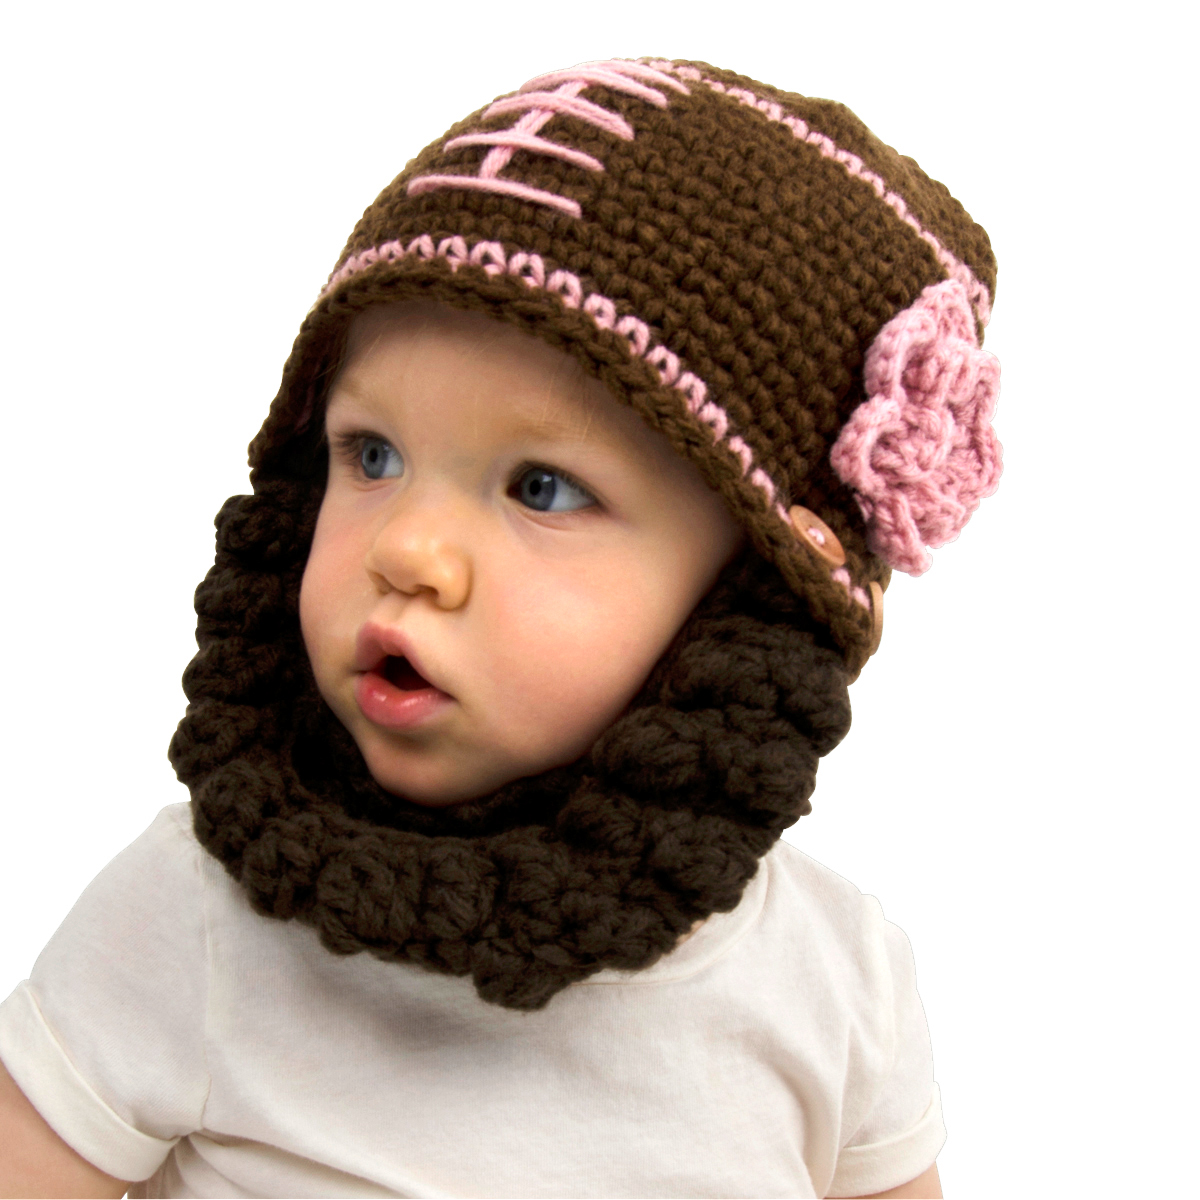 c8c15b8dc6e44 Brown and Pink Football Beanie with Beard - Girl Boy Toddler Kid ...